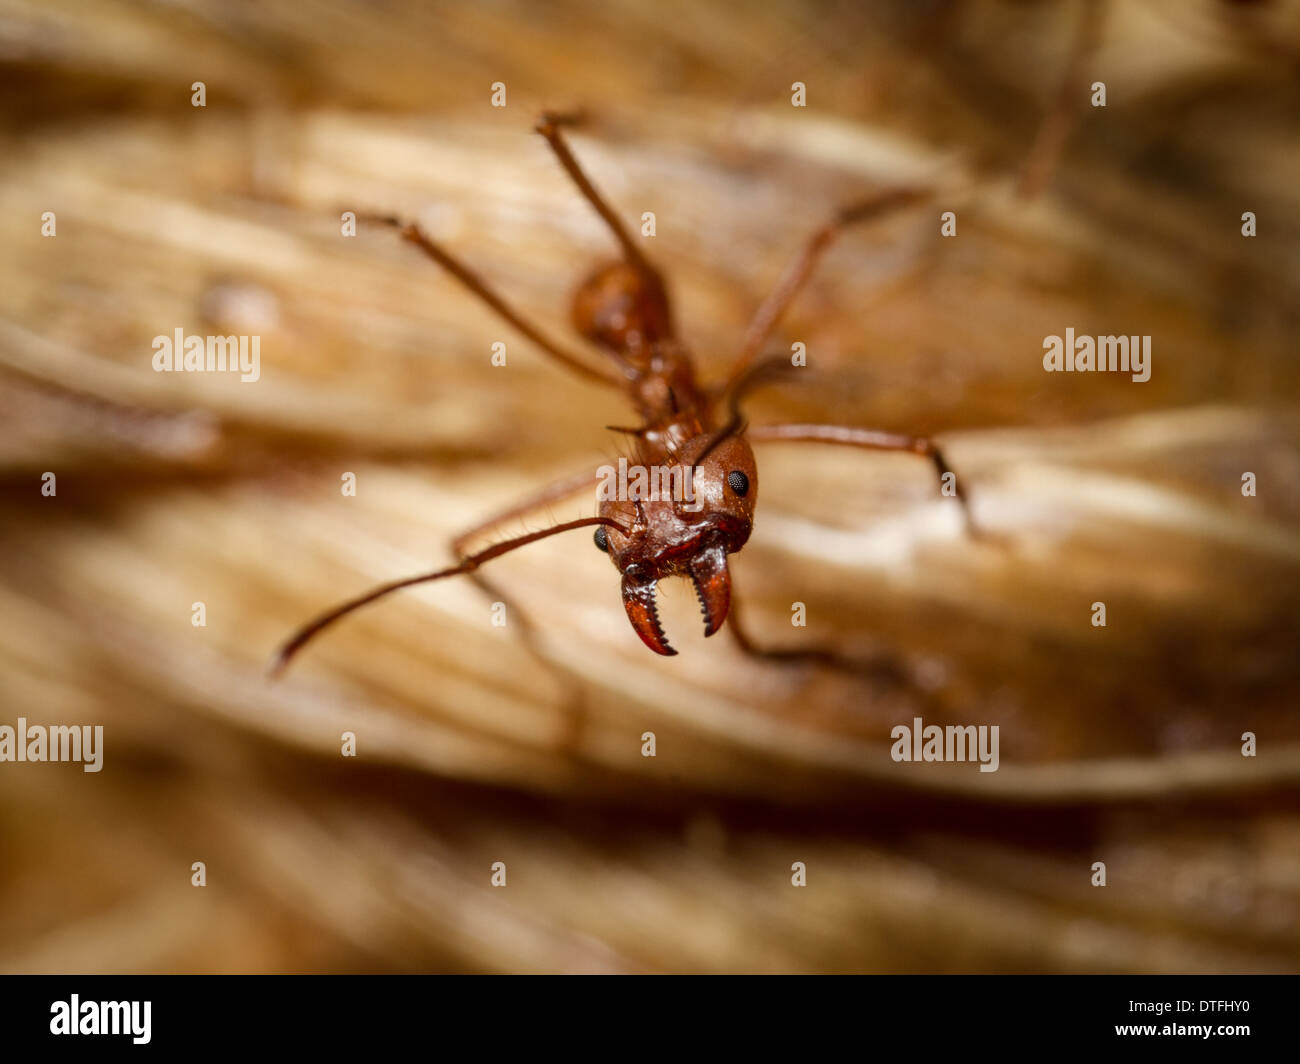 Leaf-cutter ant (Atta cephalotes) soldier - Stock Image